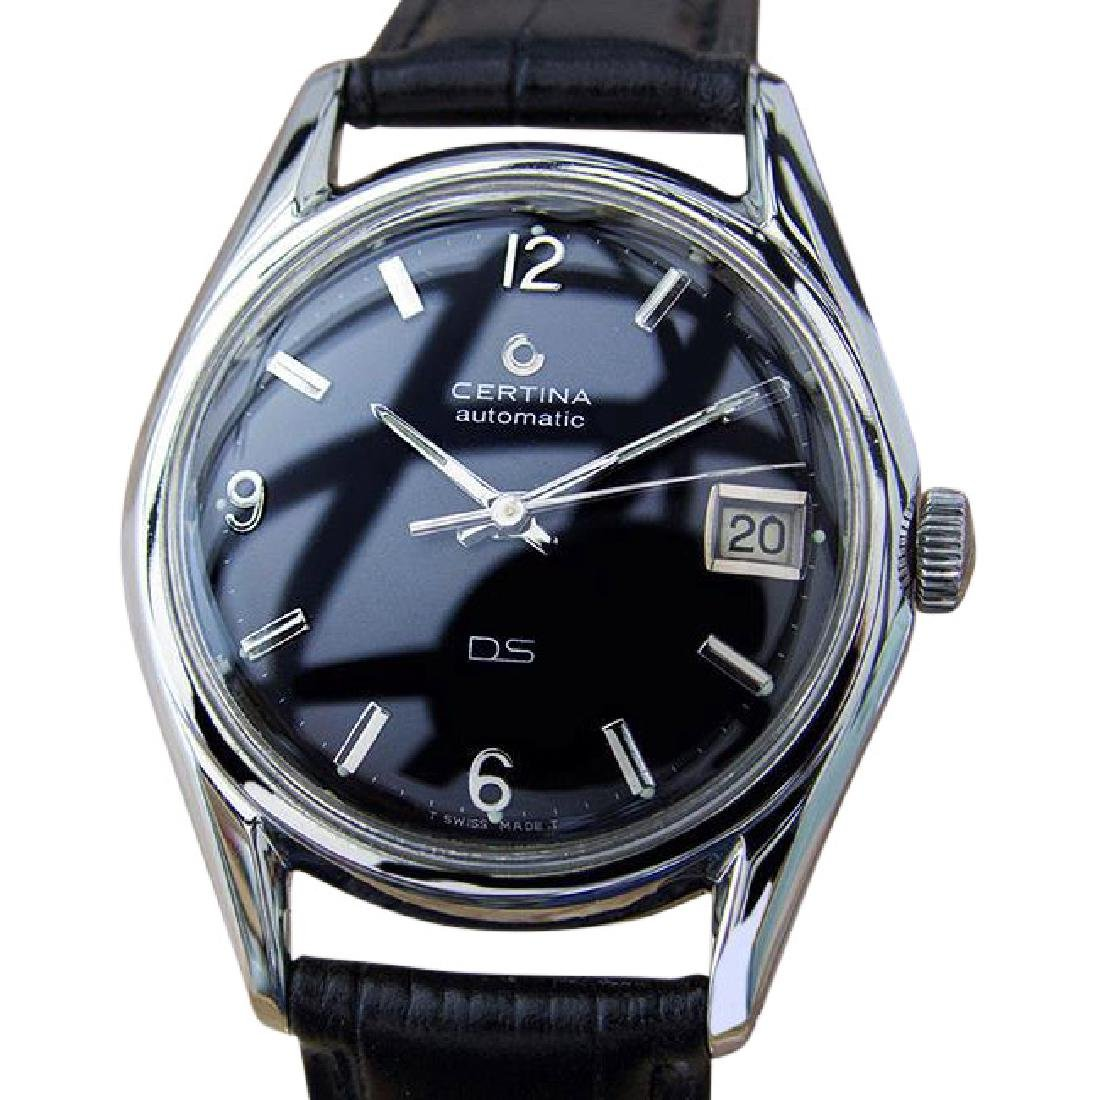 CERTINA | Automatic DS | 1960s